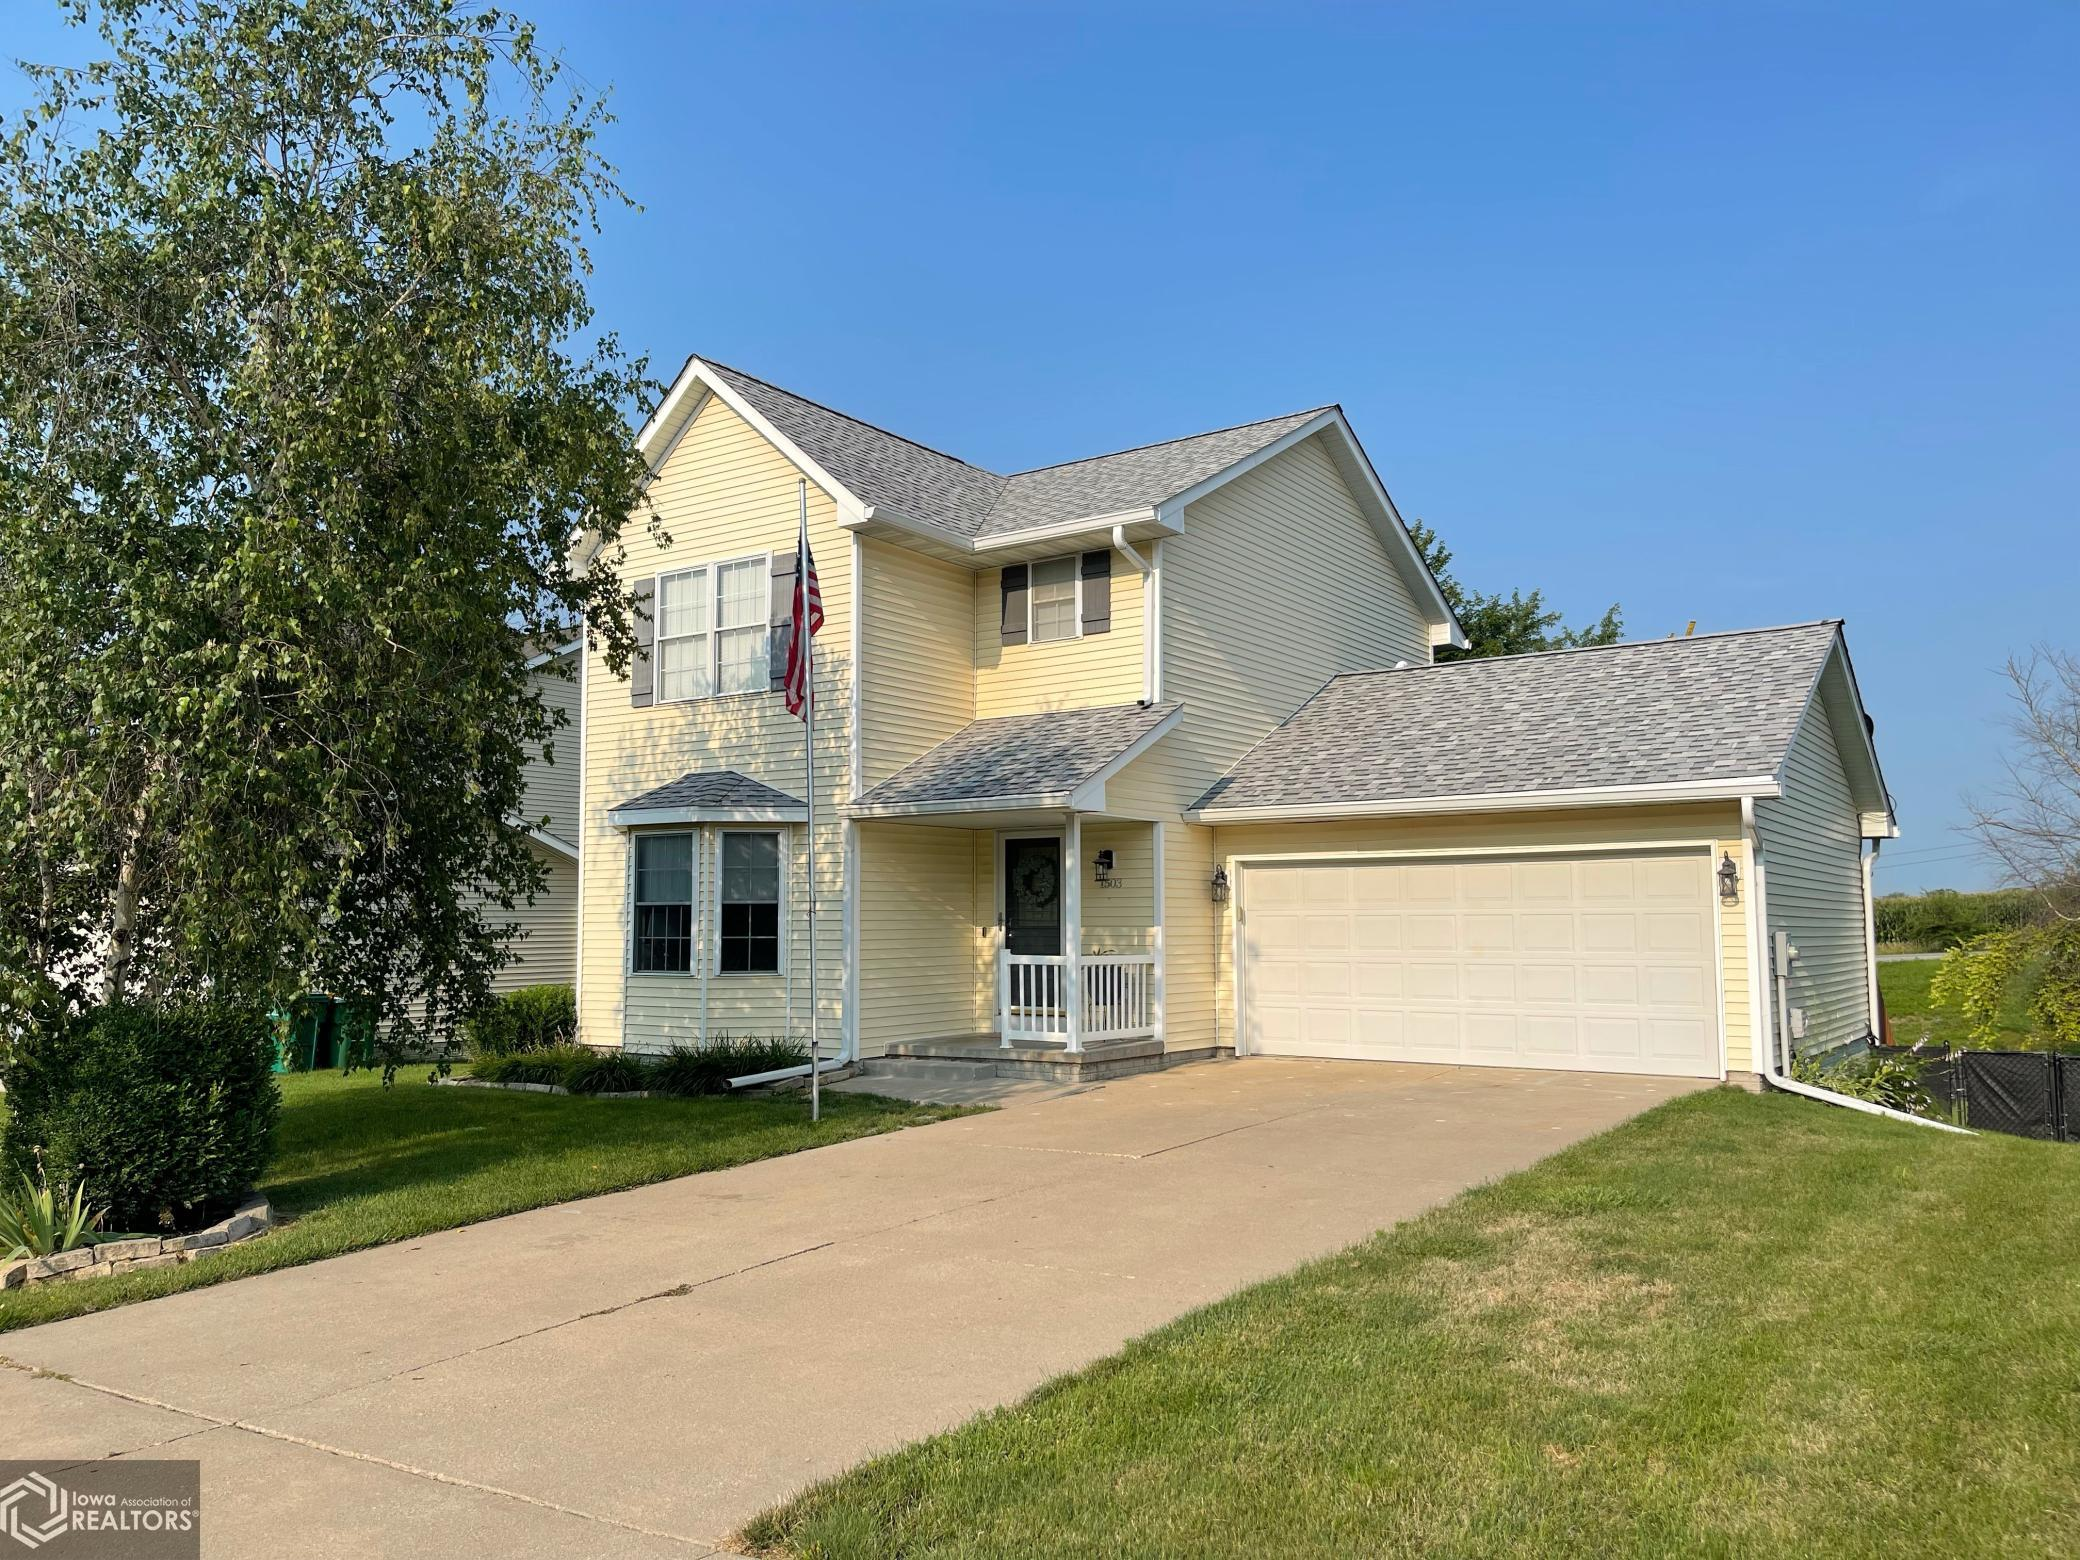 1503 3rd, Indianola, Iowa 50125-9705, 3 Bedrooms Bedrooms, ,2 BathroomsBathrooms,Single Family,For Sale,3rd,6028915